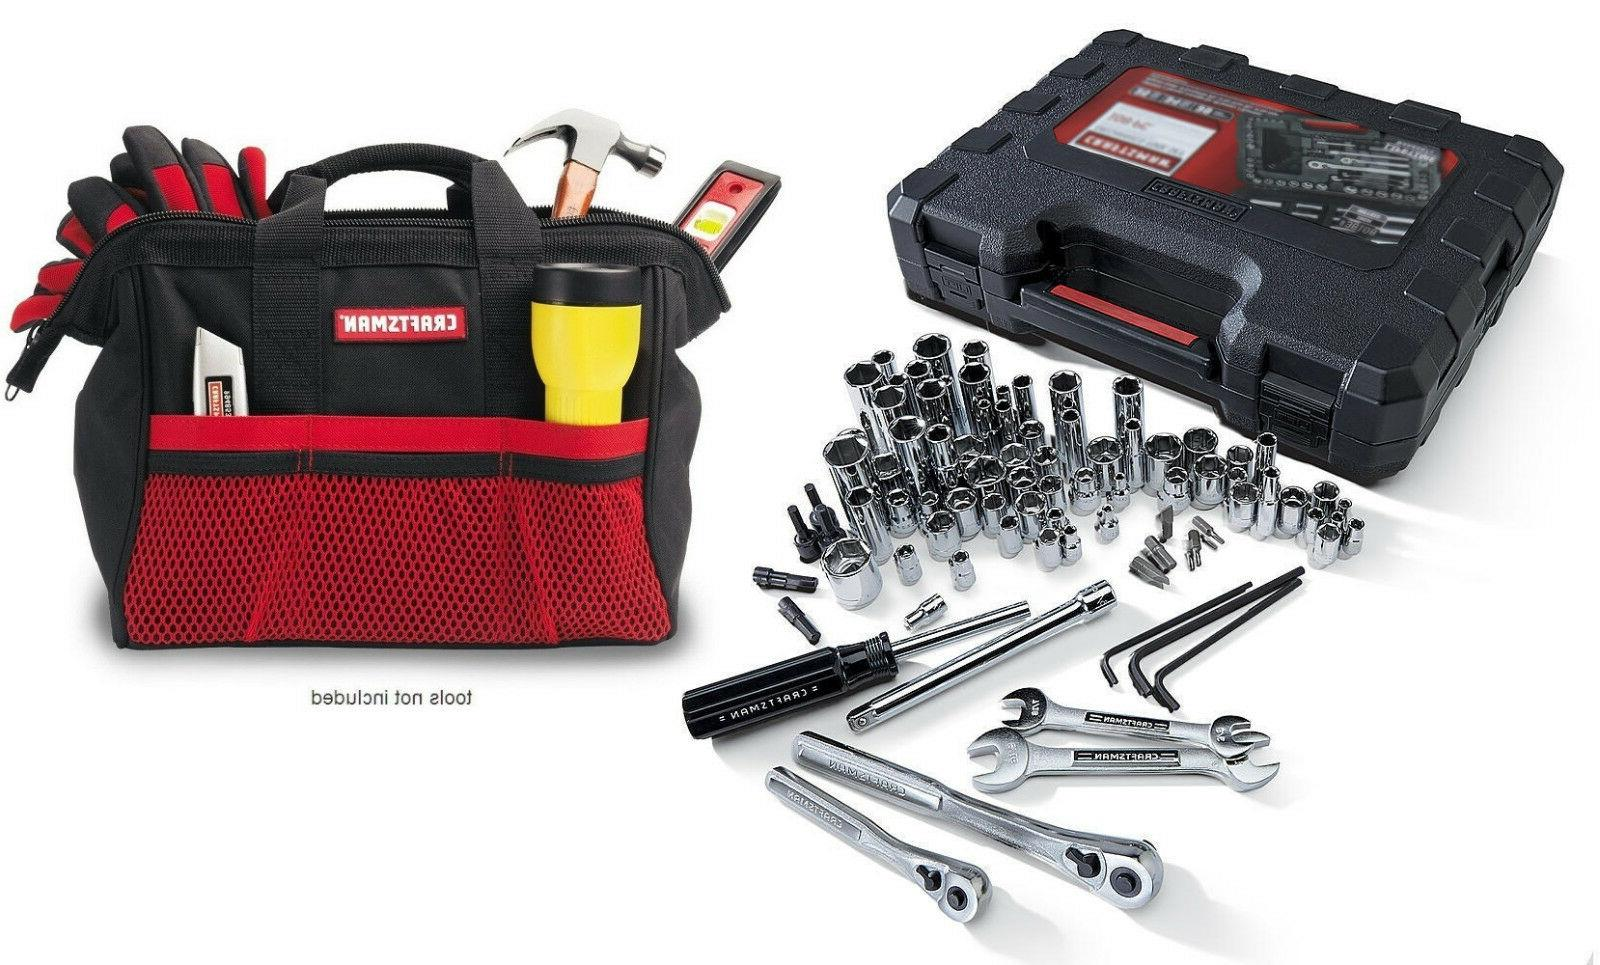 Craftsman 108 Piece Mechanic's Tool Set With Case & Free 13""